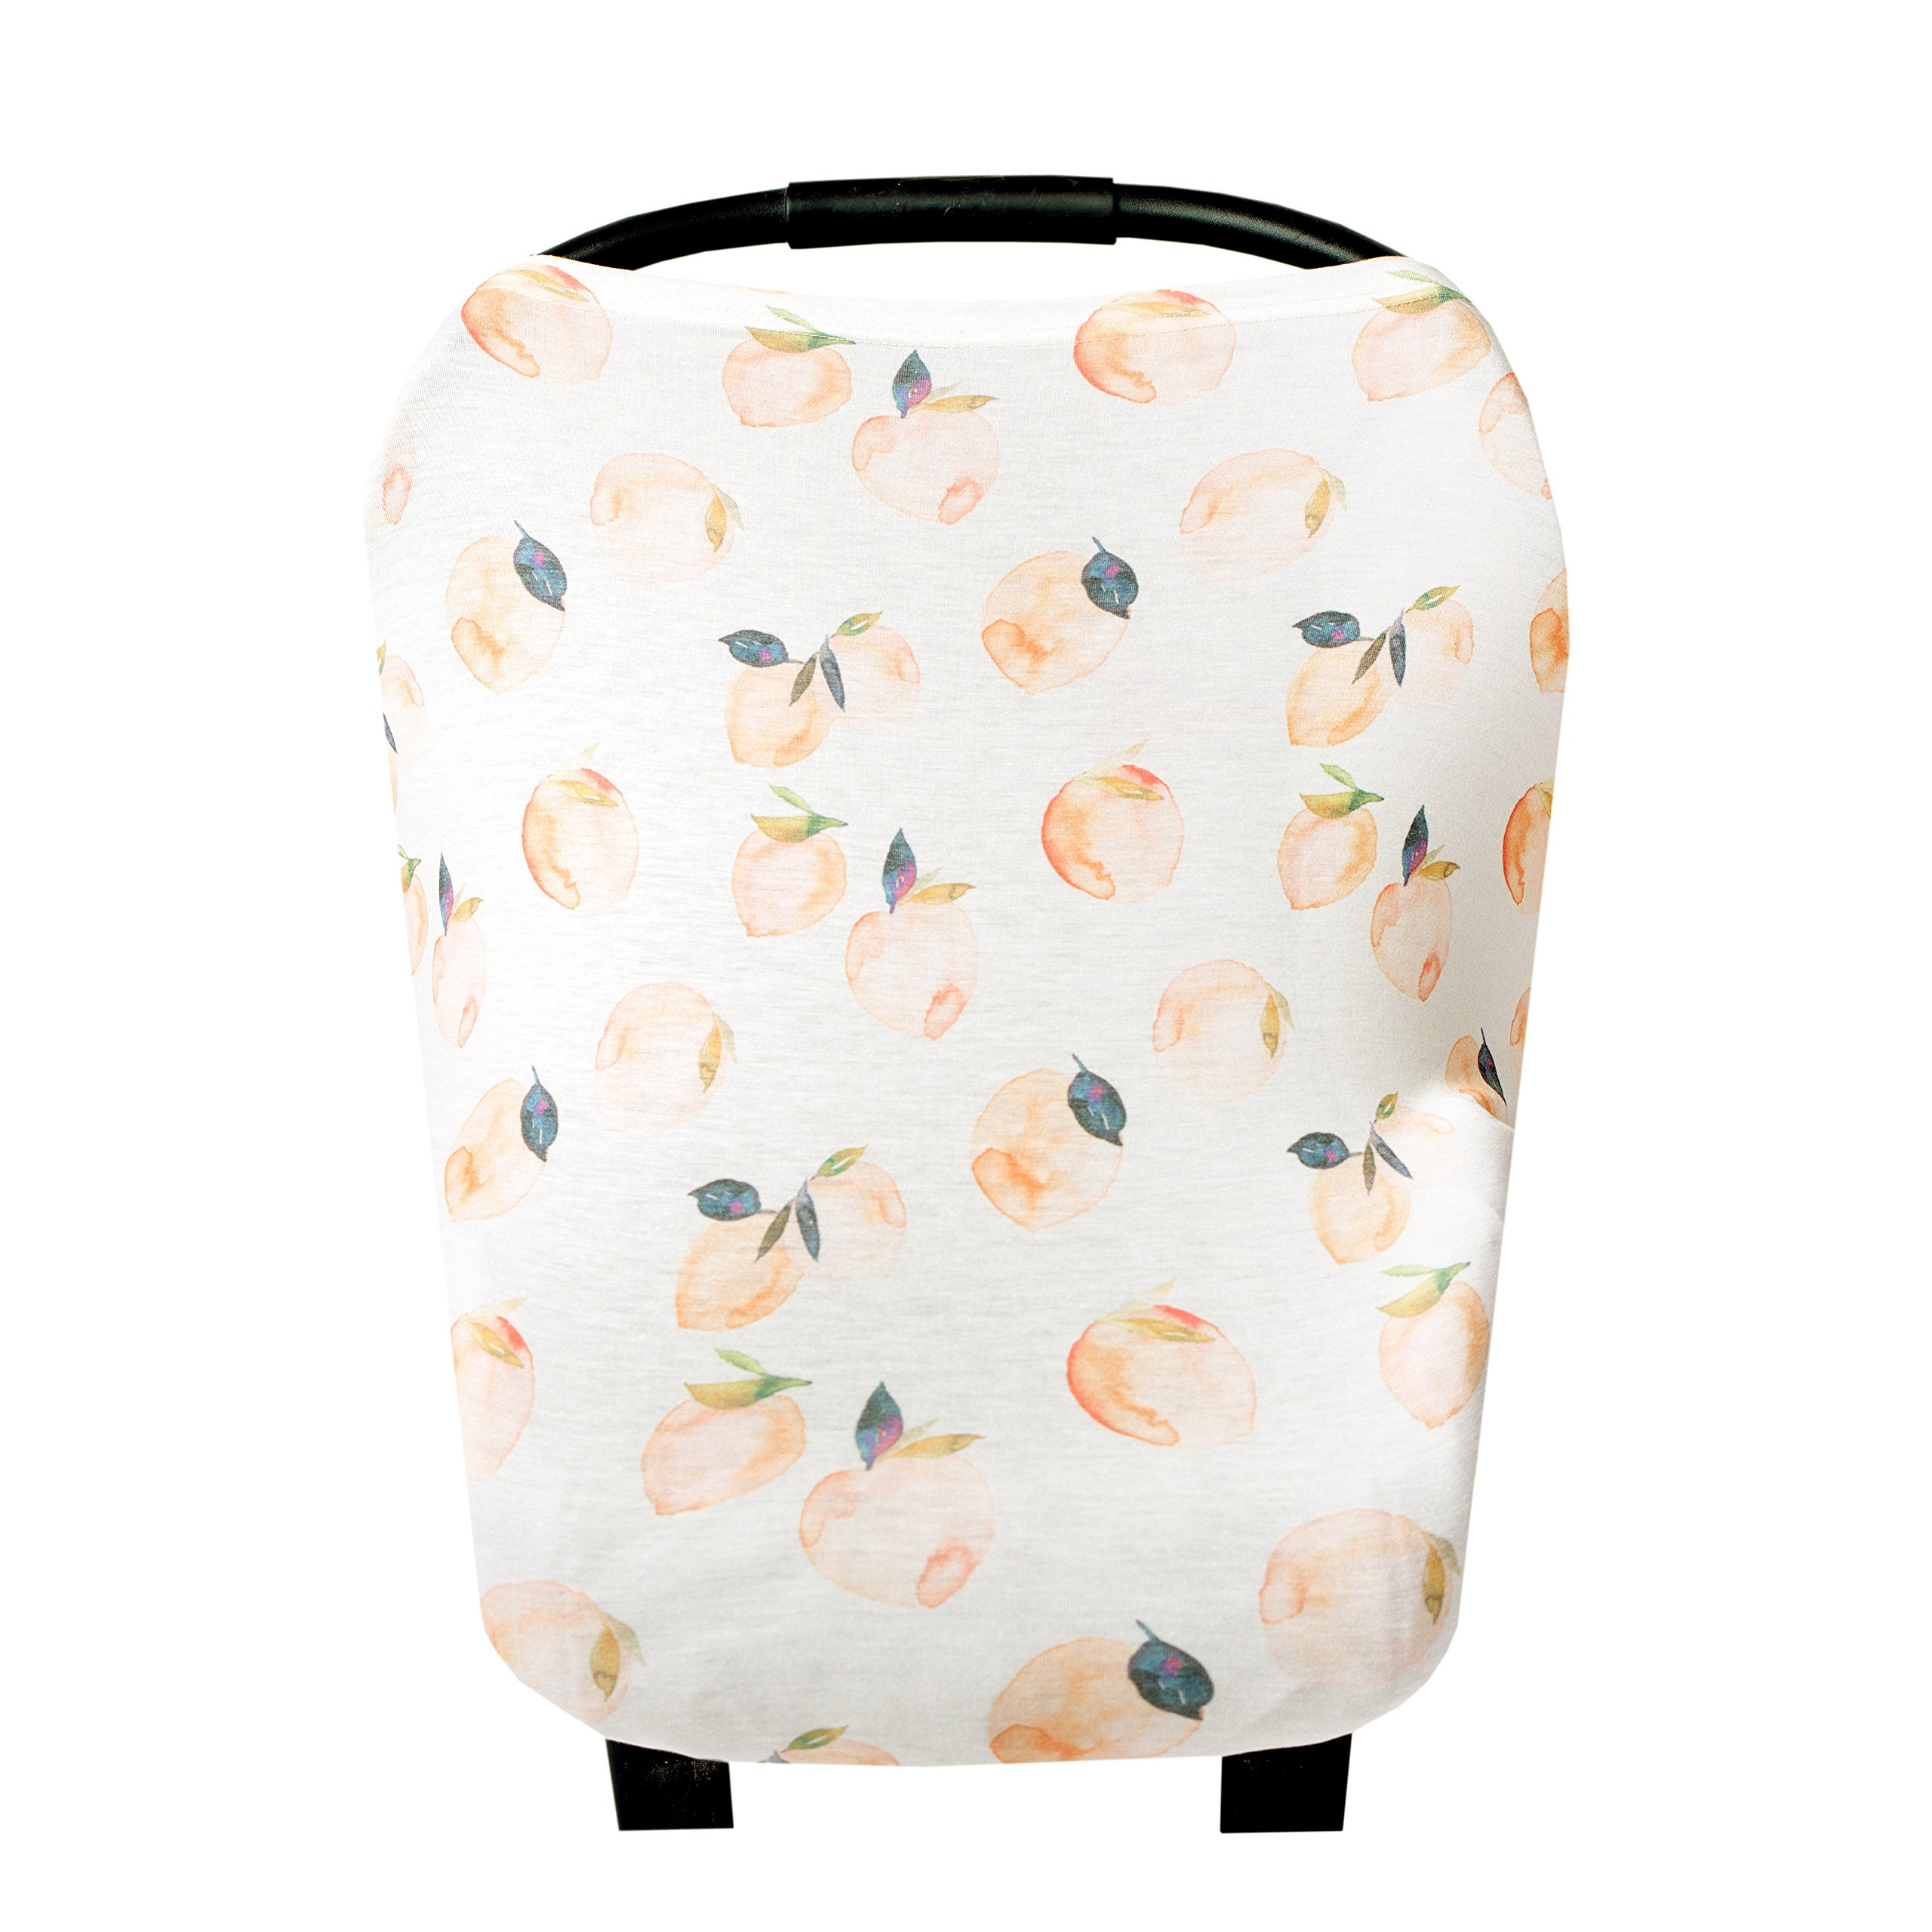 Baby Car Seat Cover Canopy and Nursing Cover Multi-Use Stretchy 5 in 1 Gift ''Caroline'' by Copper Pearl